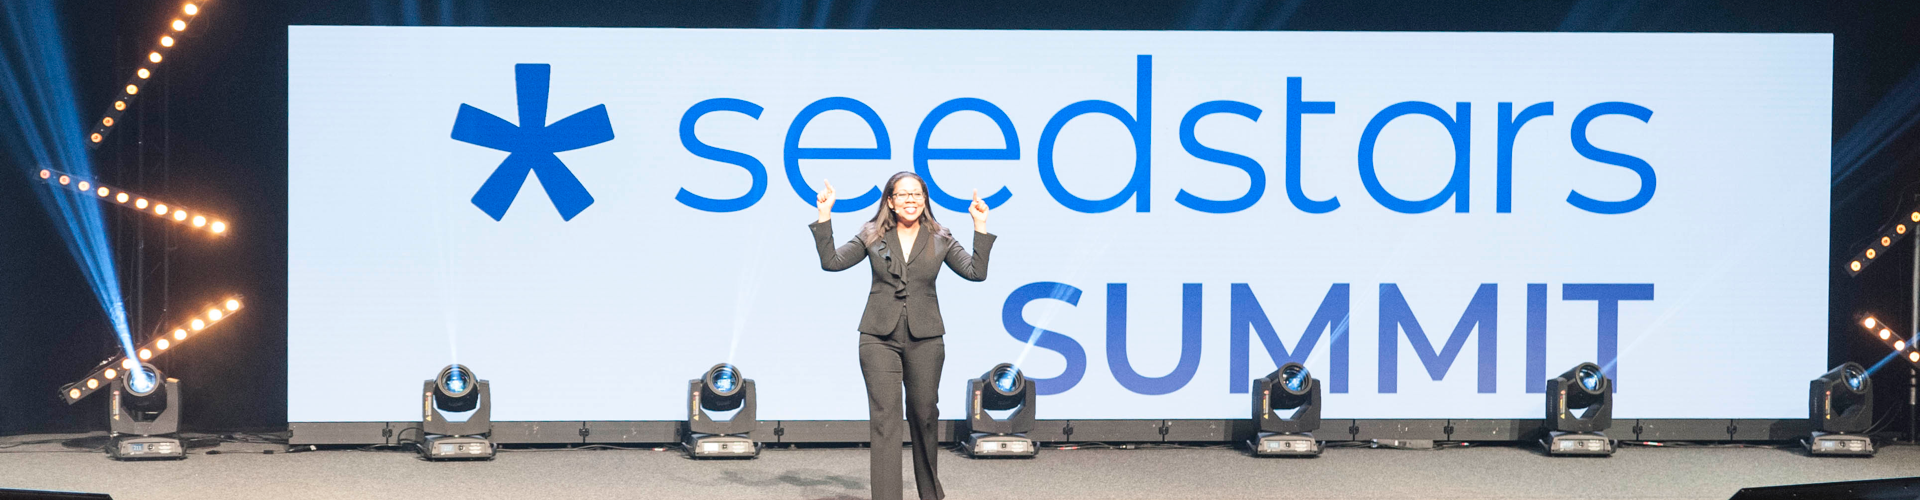 Seedstars Summit